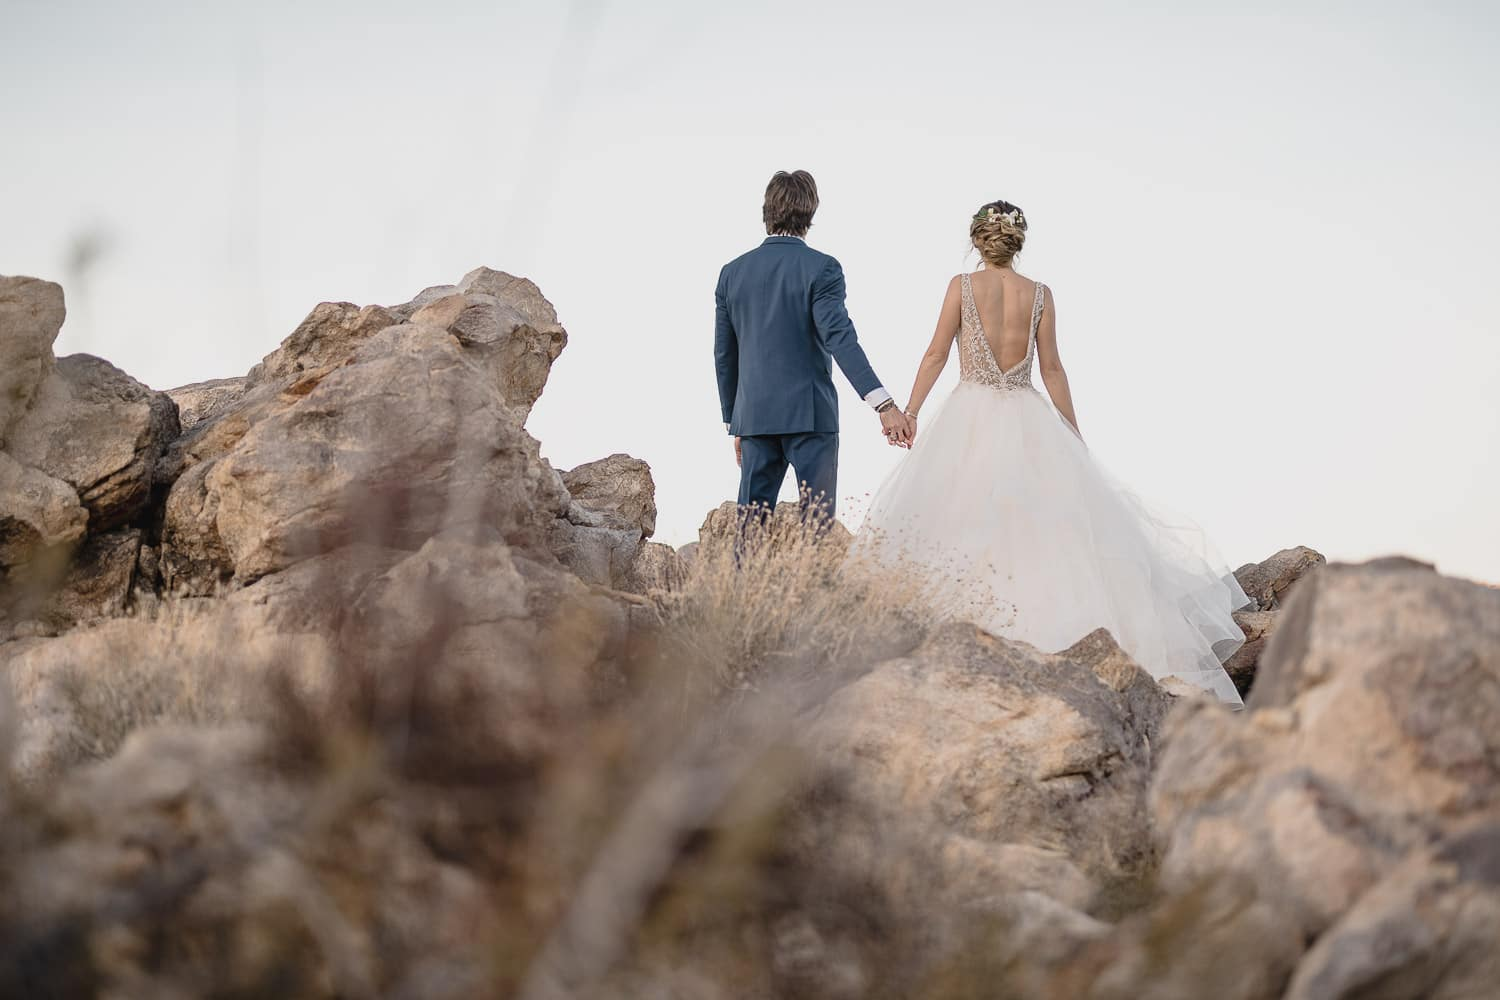 Melanie + Anthony Joshua Tree Intimate Elopement 21